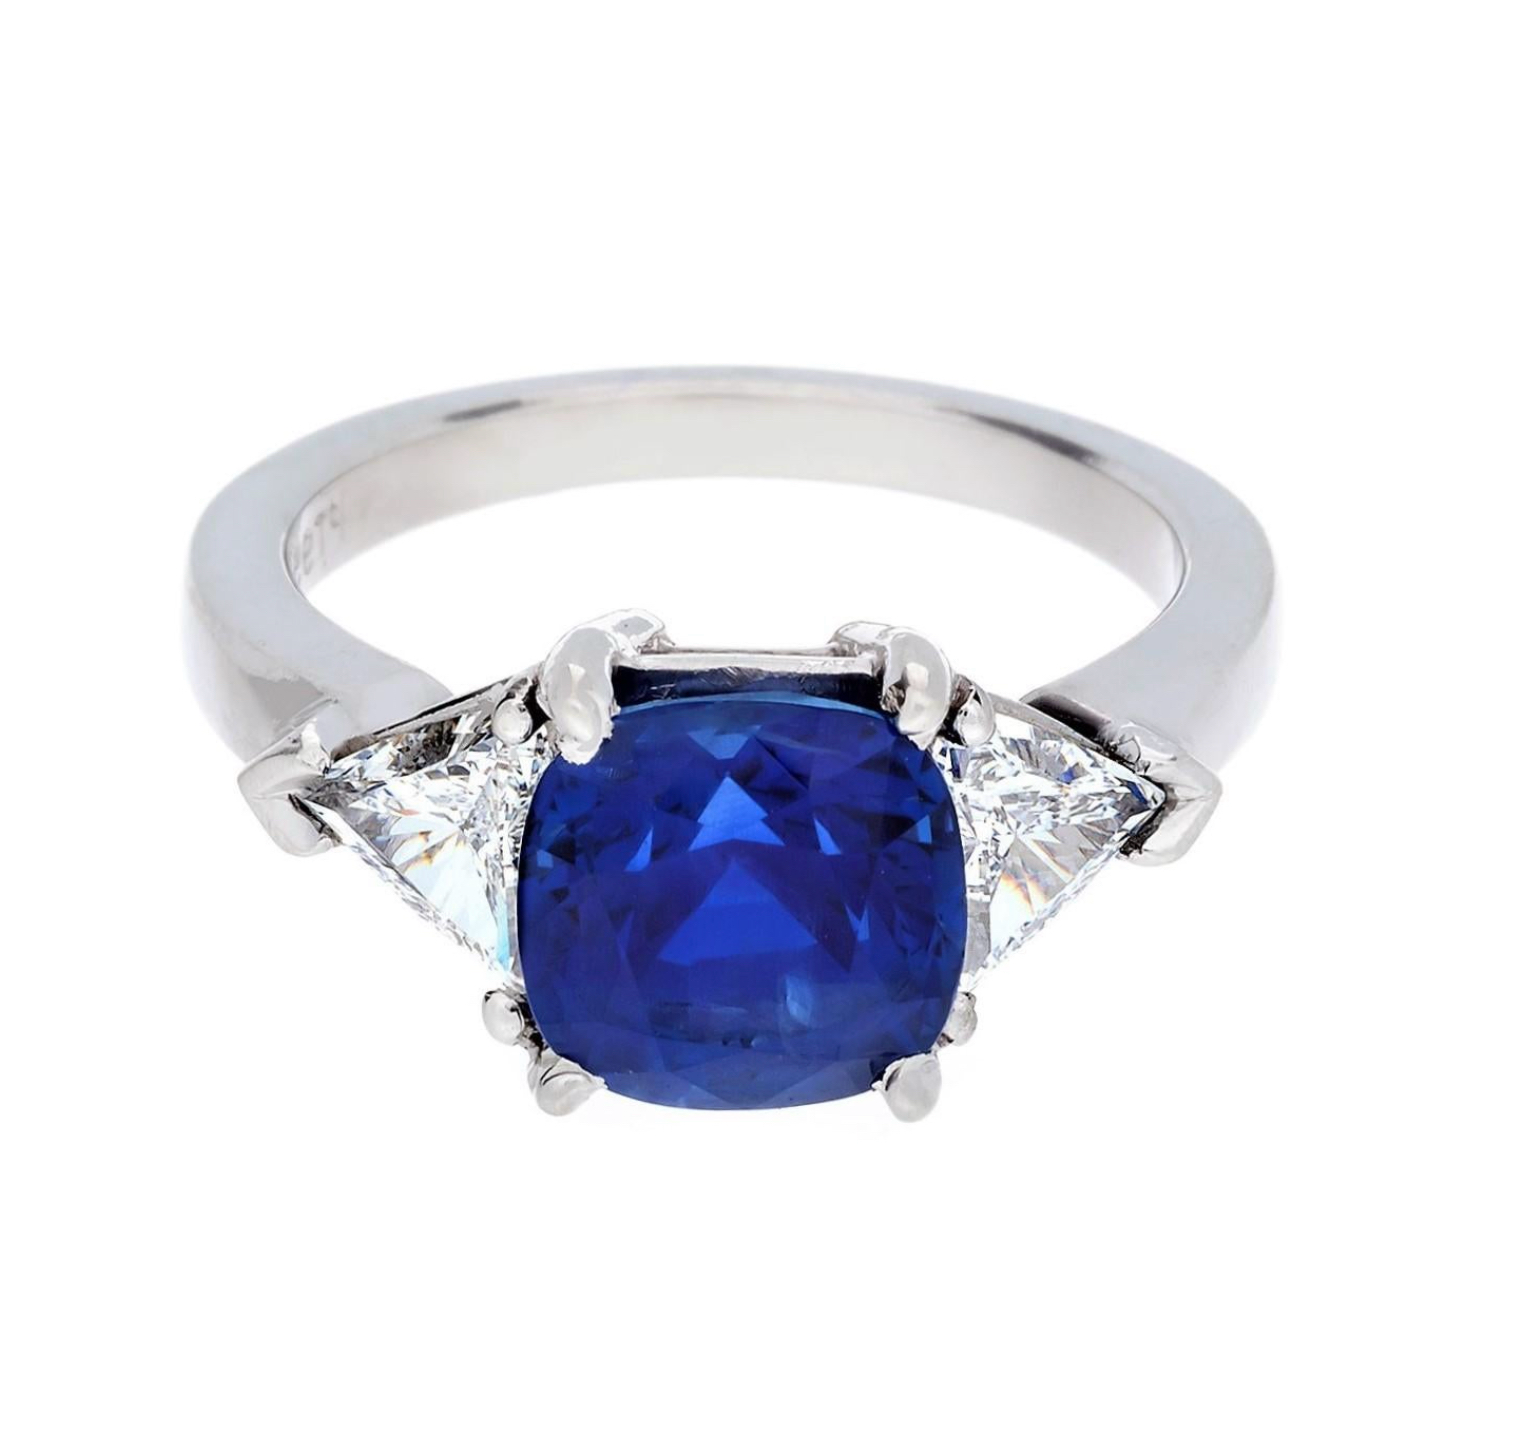 3.09 Carat Burma Sapphire and Diamond 3-Stone Ring with Gubelin Certificate and No Heat Treatment